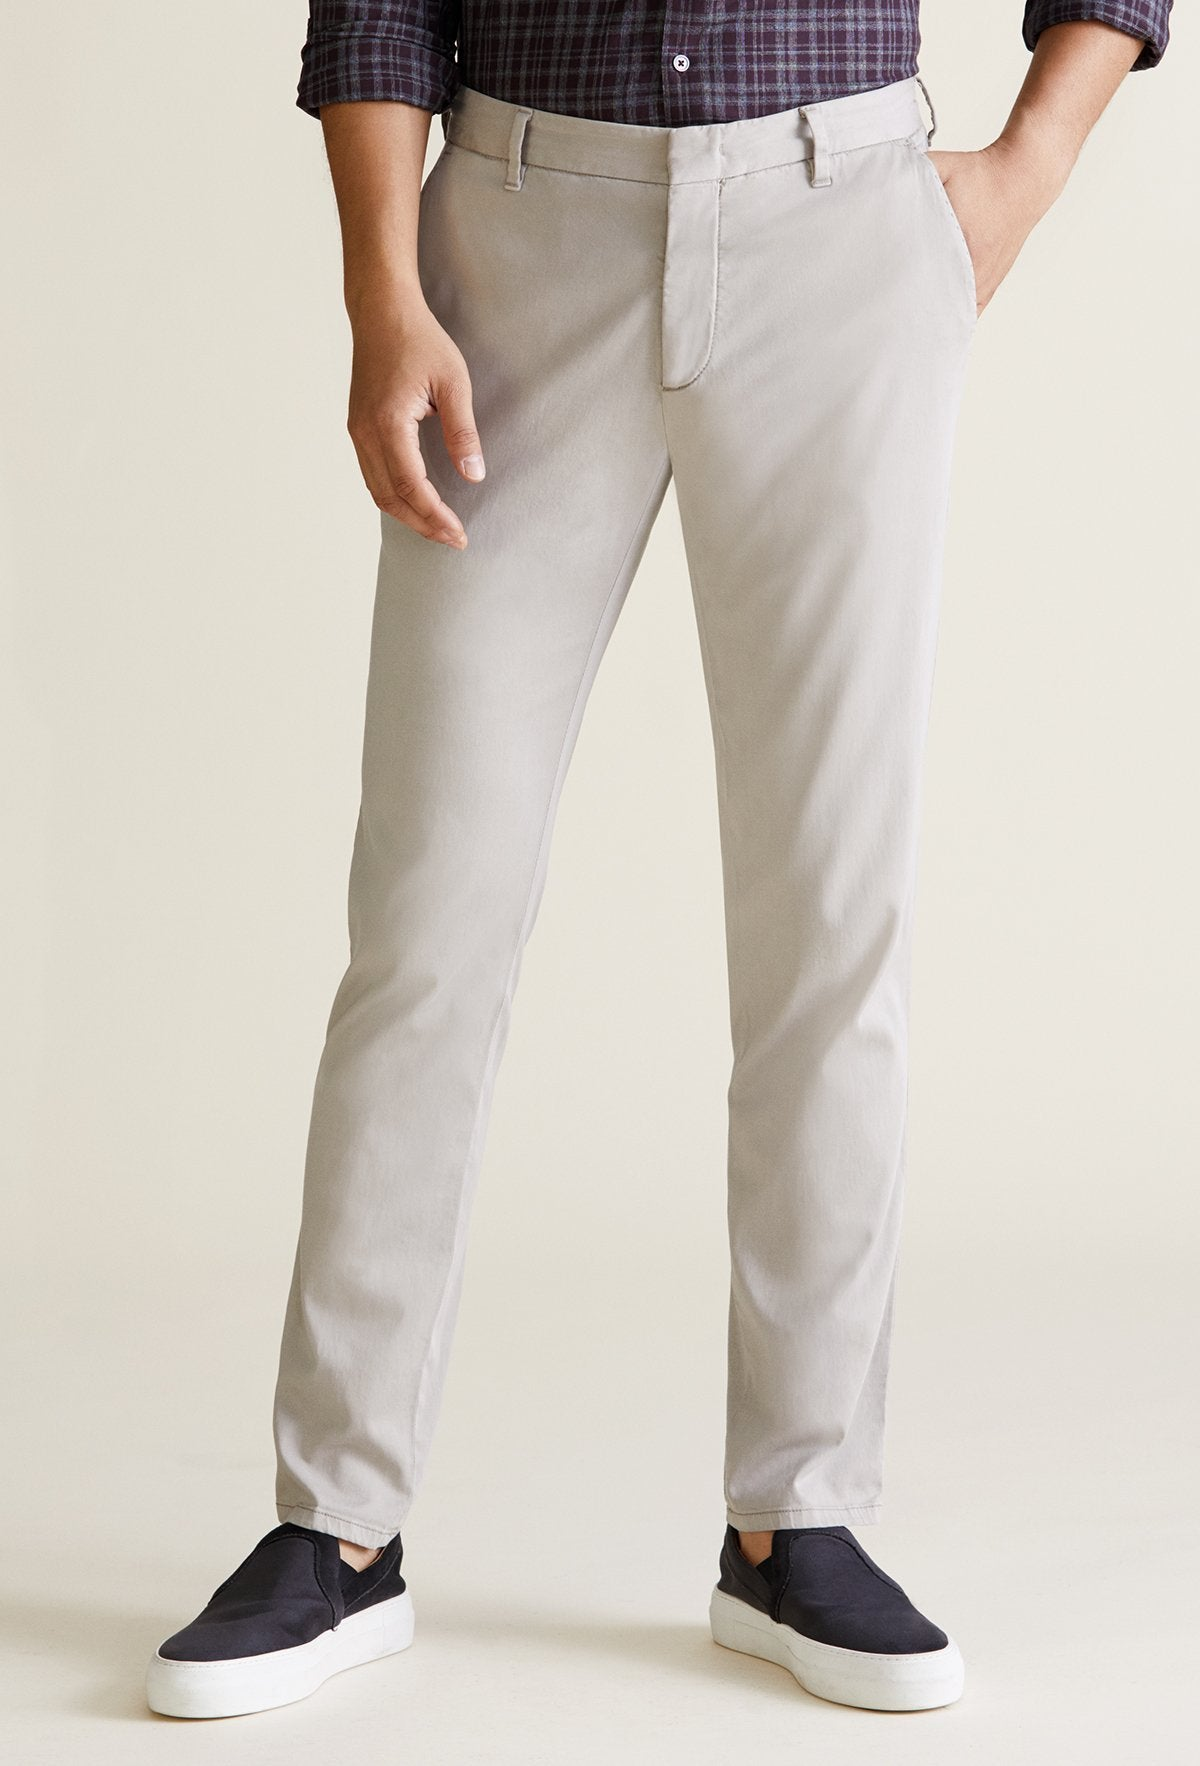 men's dark stone chino pants